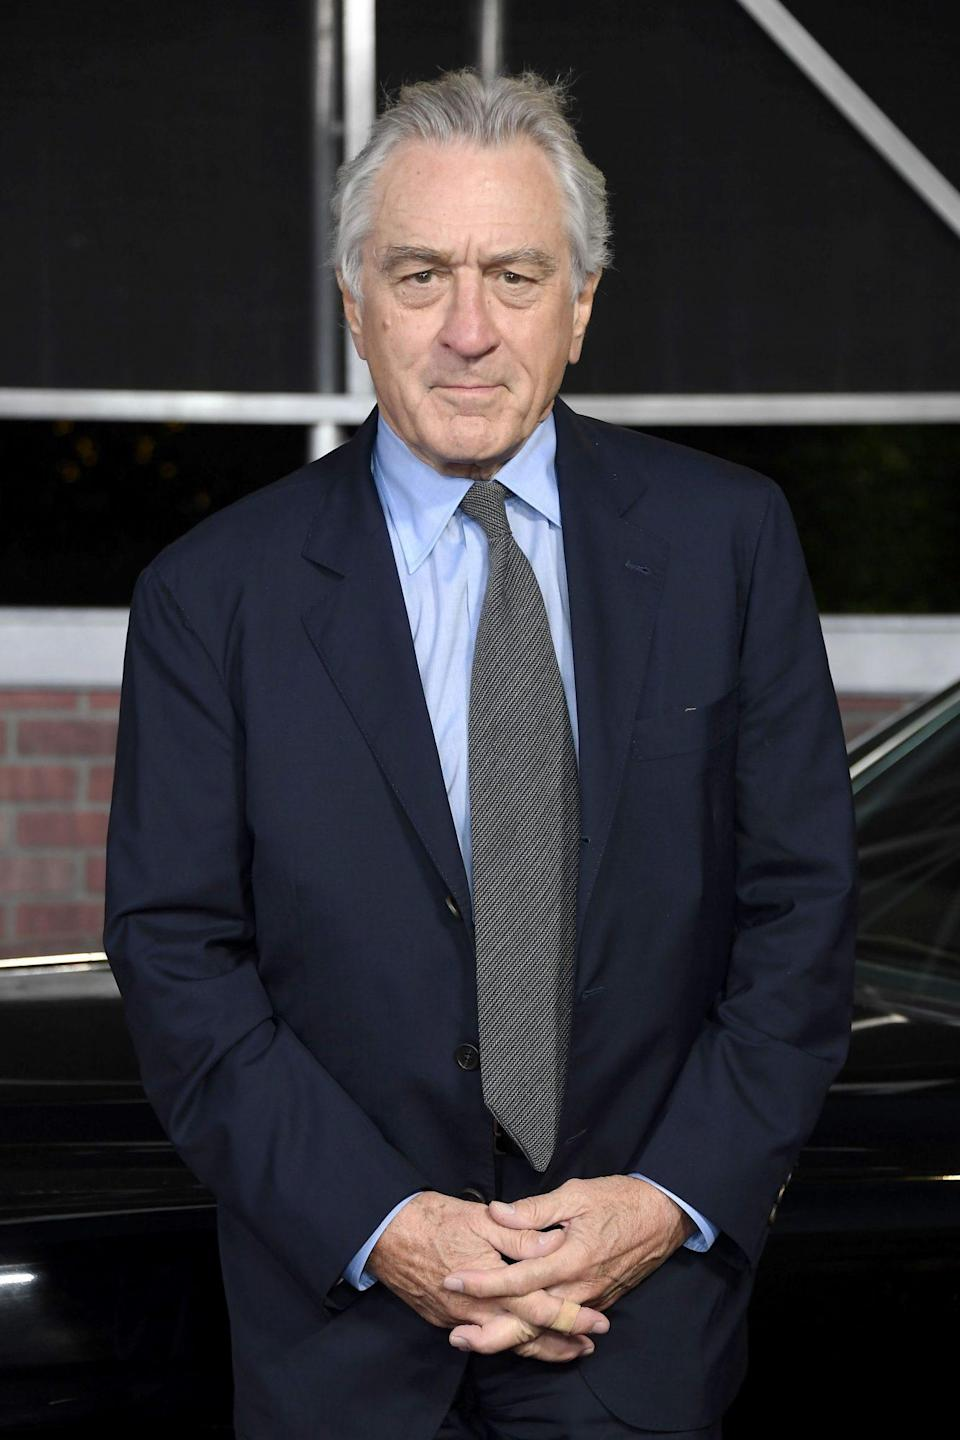 <p>Actor Robert De Niro won the Cecil B. DeMille Award in 2011, after receiving eight prior nominations and one win (1981's <em>Raging Bull).</em></p>